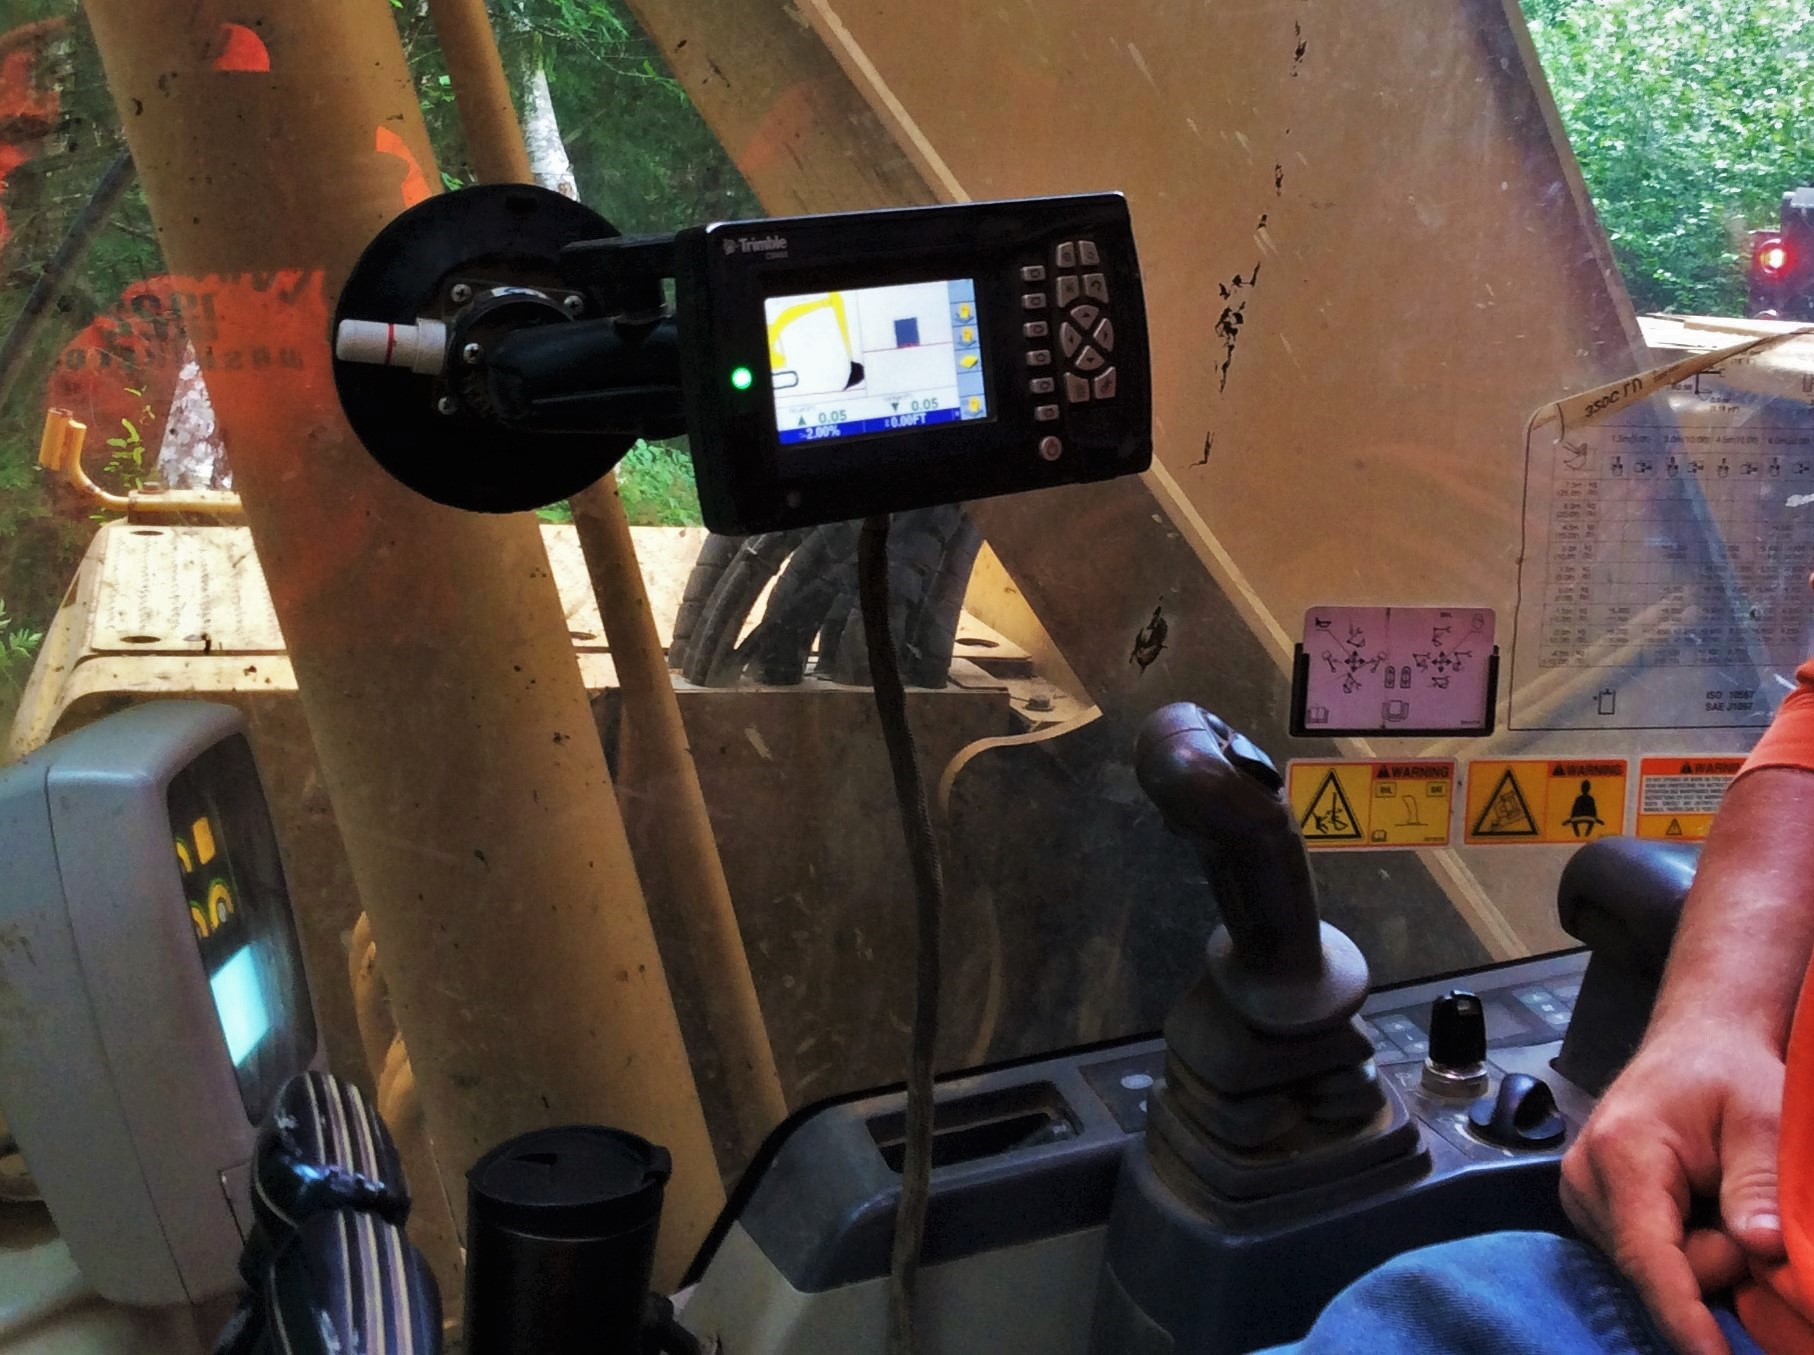 Trimble enabled excavators allowed Ohrberg Excavation operators to efficiently and accurately restore slopes to engineered specifications.